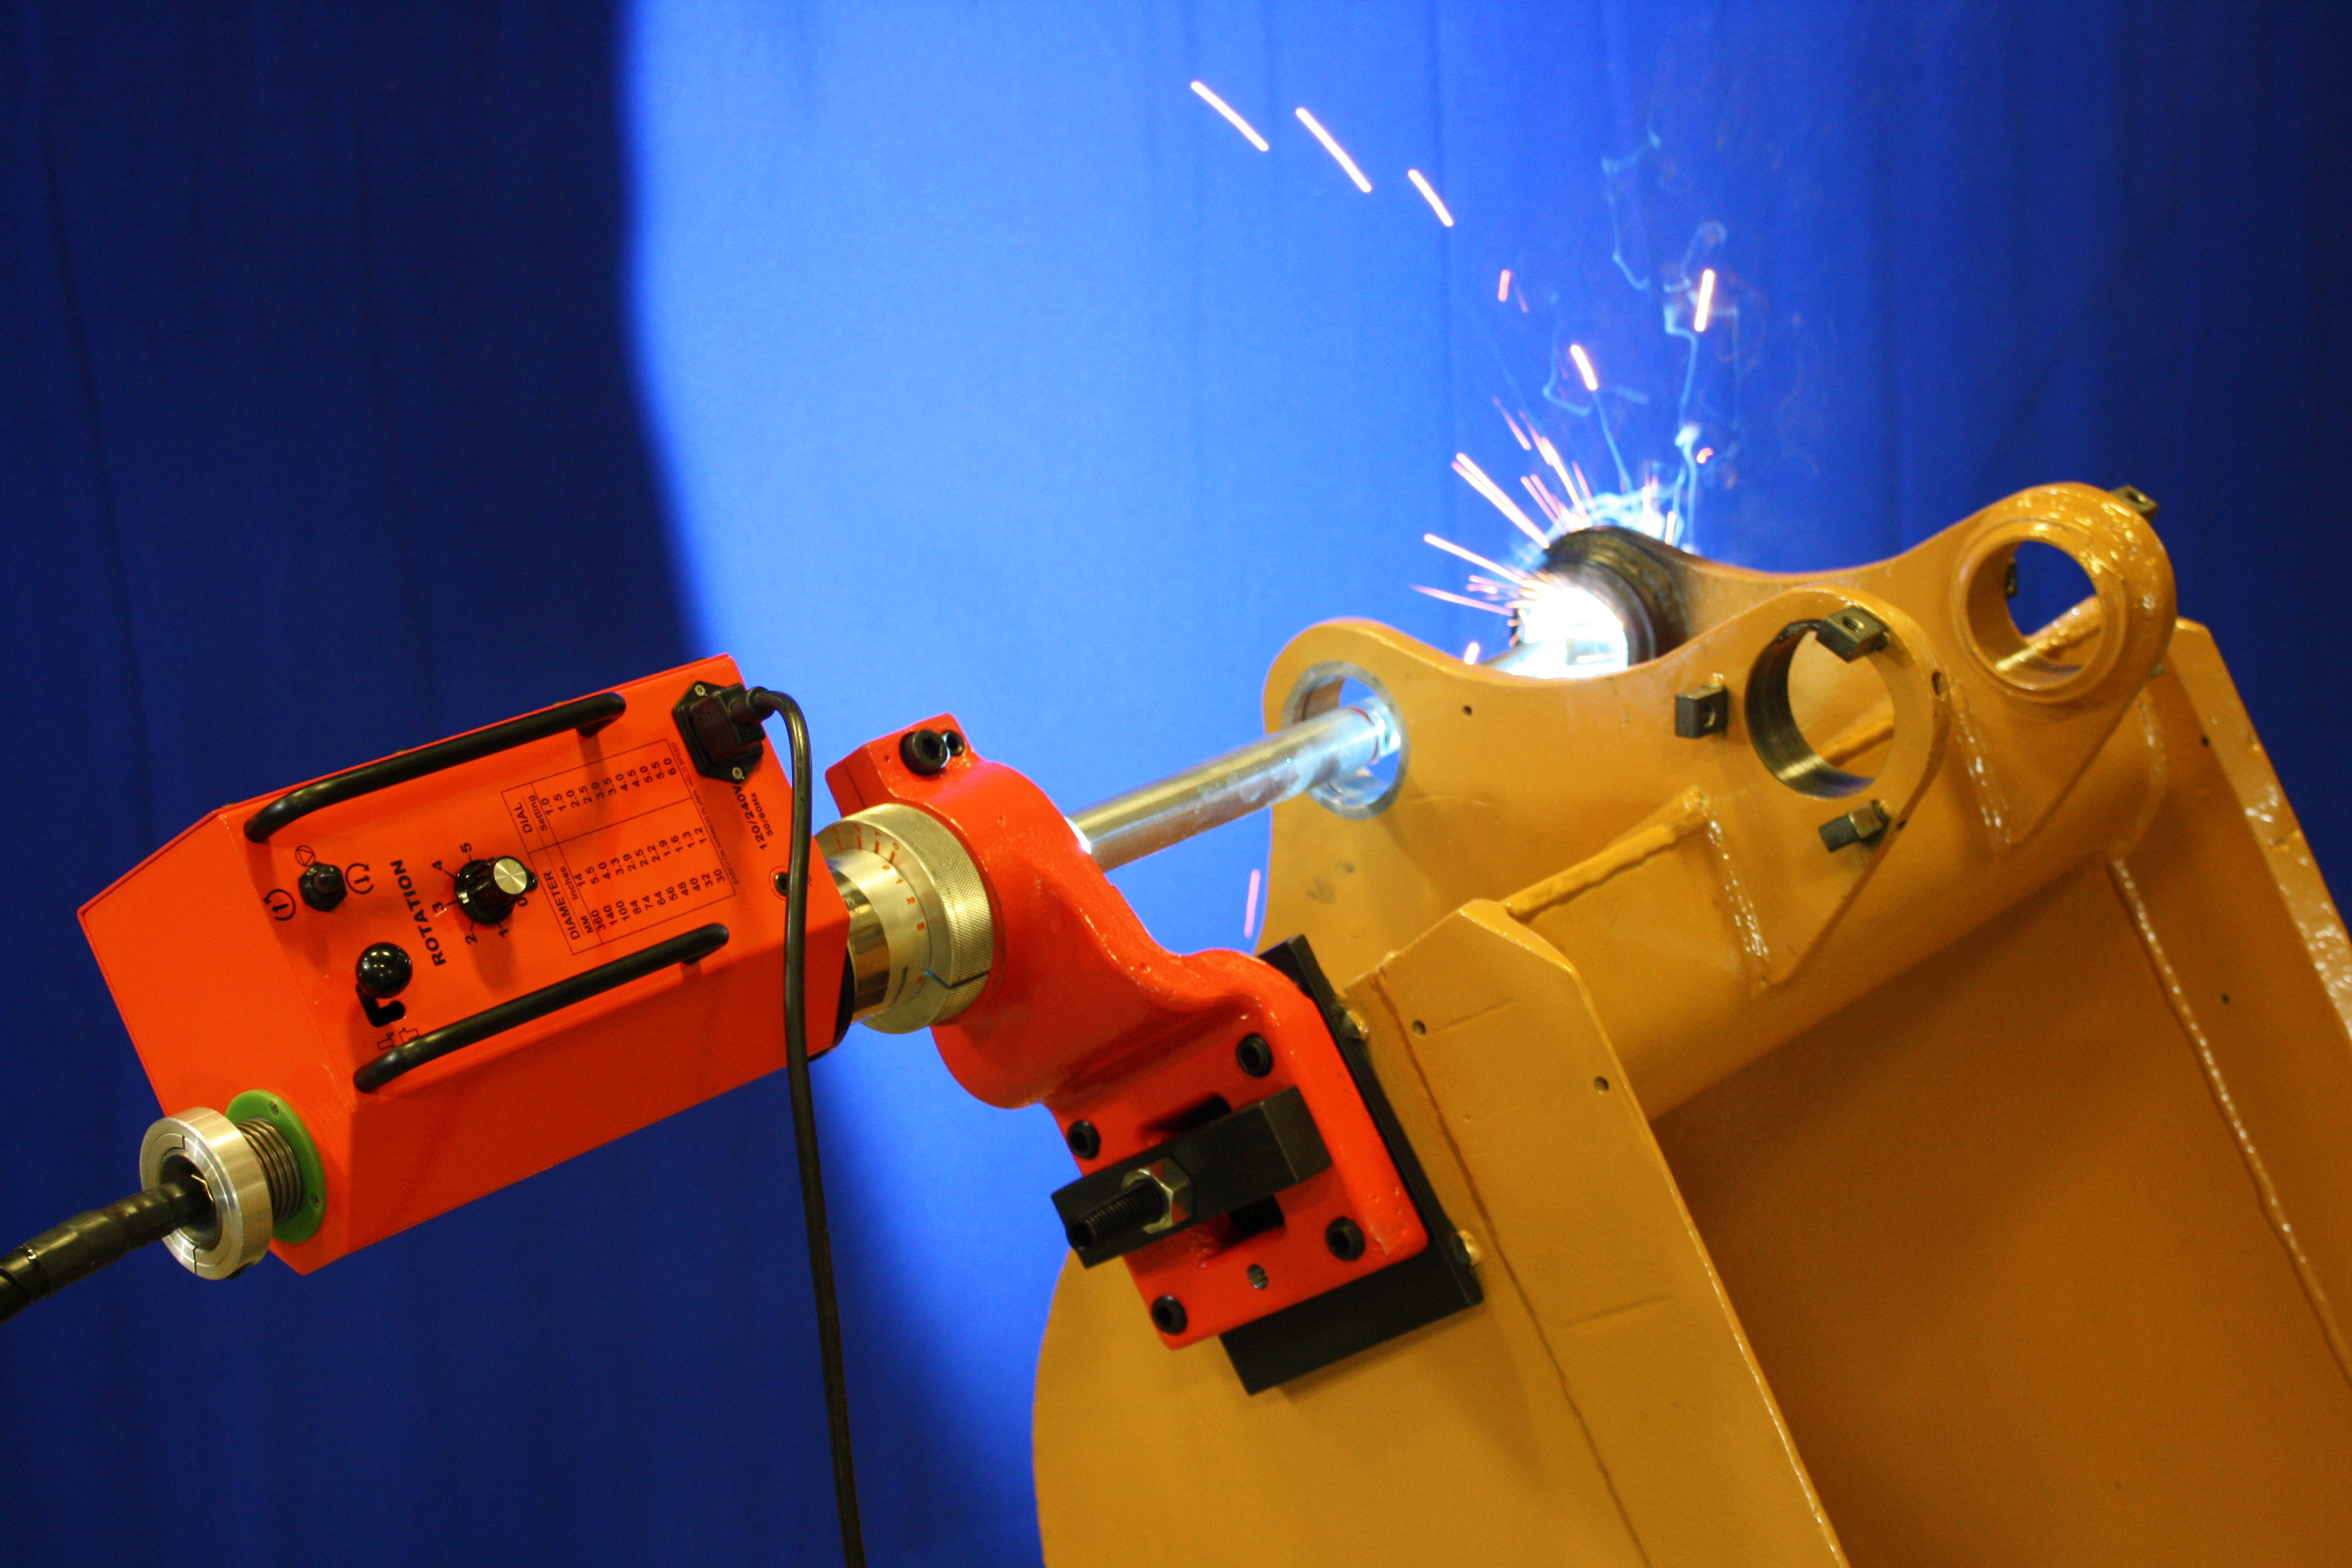 Bore Repair Systems Inc Bore Welding And Line Boring Systems